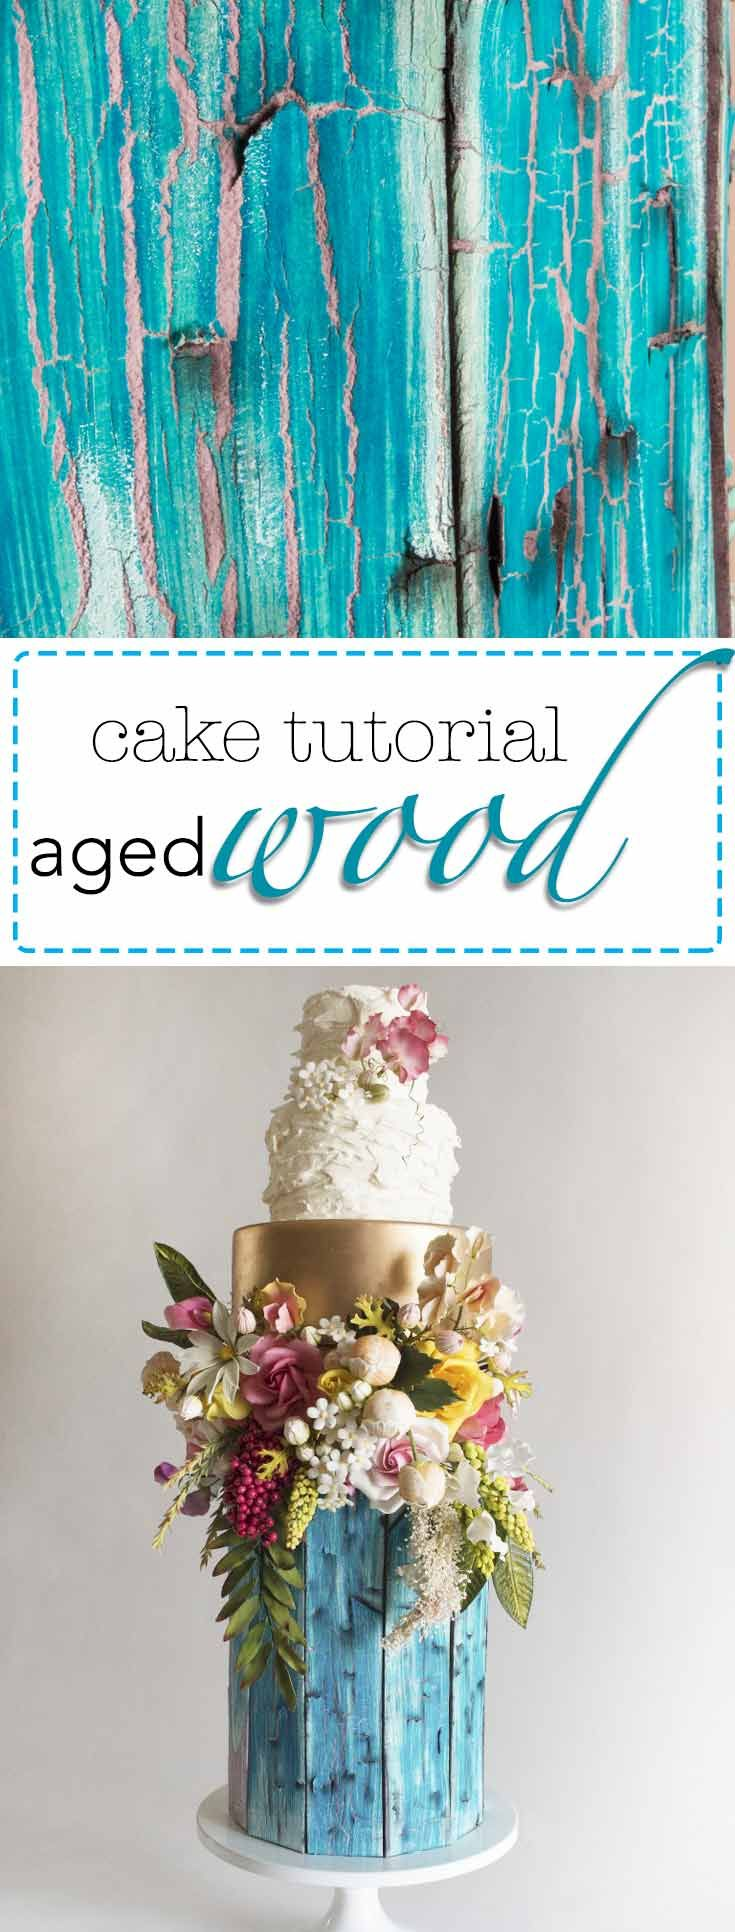 Learn to make this incredibly realistic aged, painted wood finish for cakes! It's easier than it looks and my simple tips and tricks will transform your next woodland style wedding cake design! Get the tutorial now!